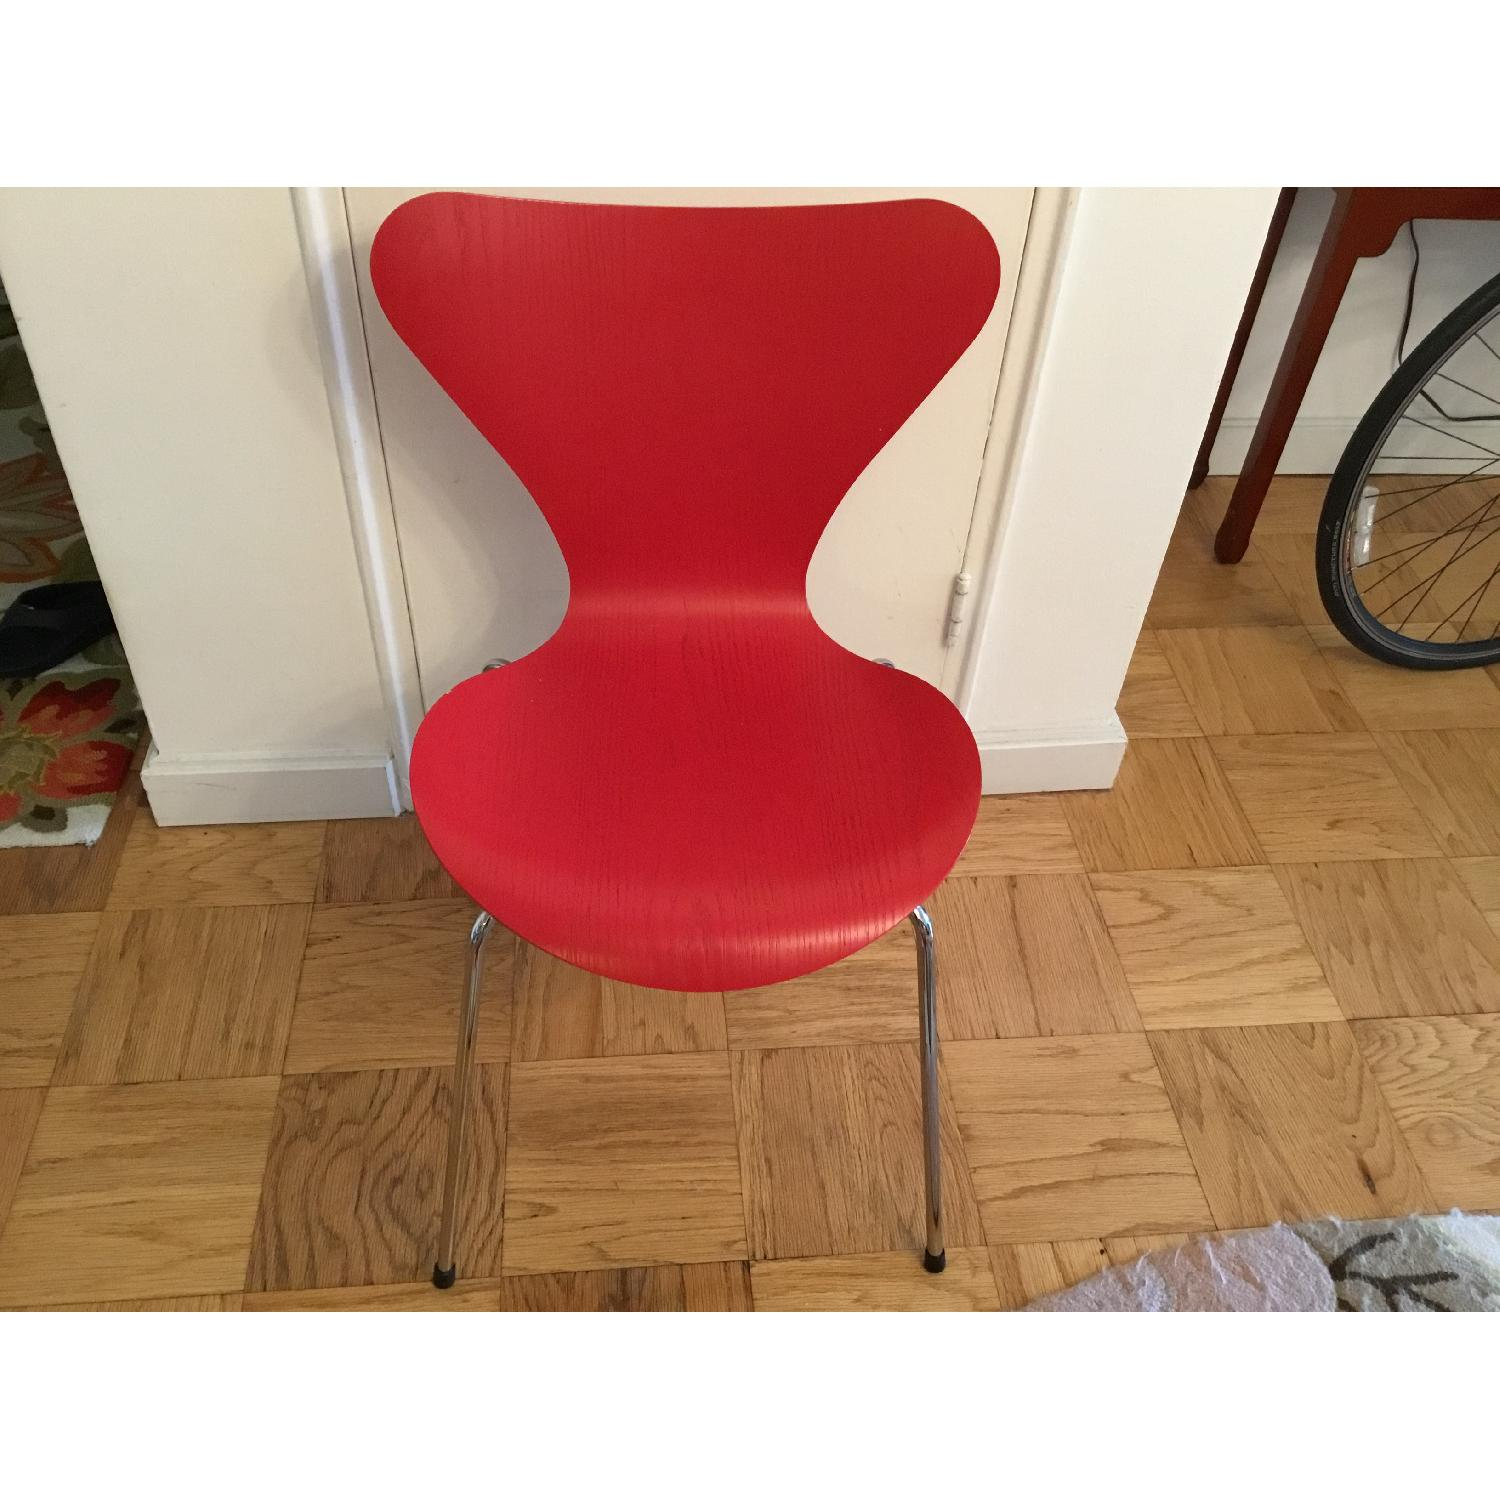 Arne Jacobsen Series 7 3107 Chair in Red Colored Ash